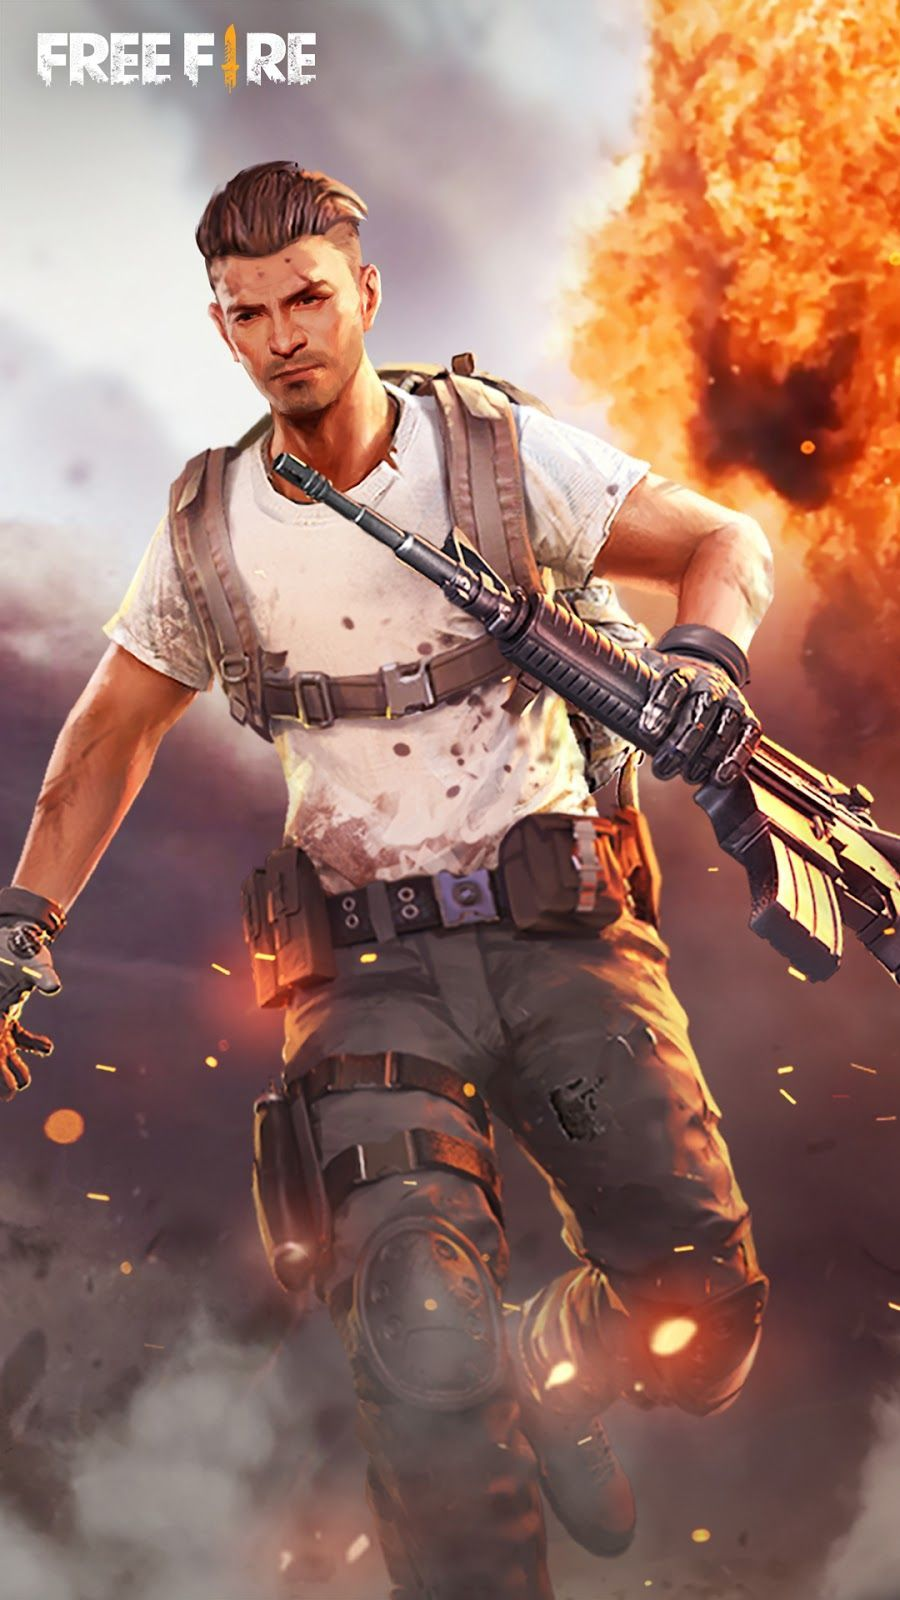 Just Another Wordpress Site In 2020 Fire Image Download Games Game Download Free